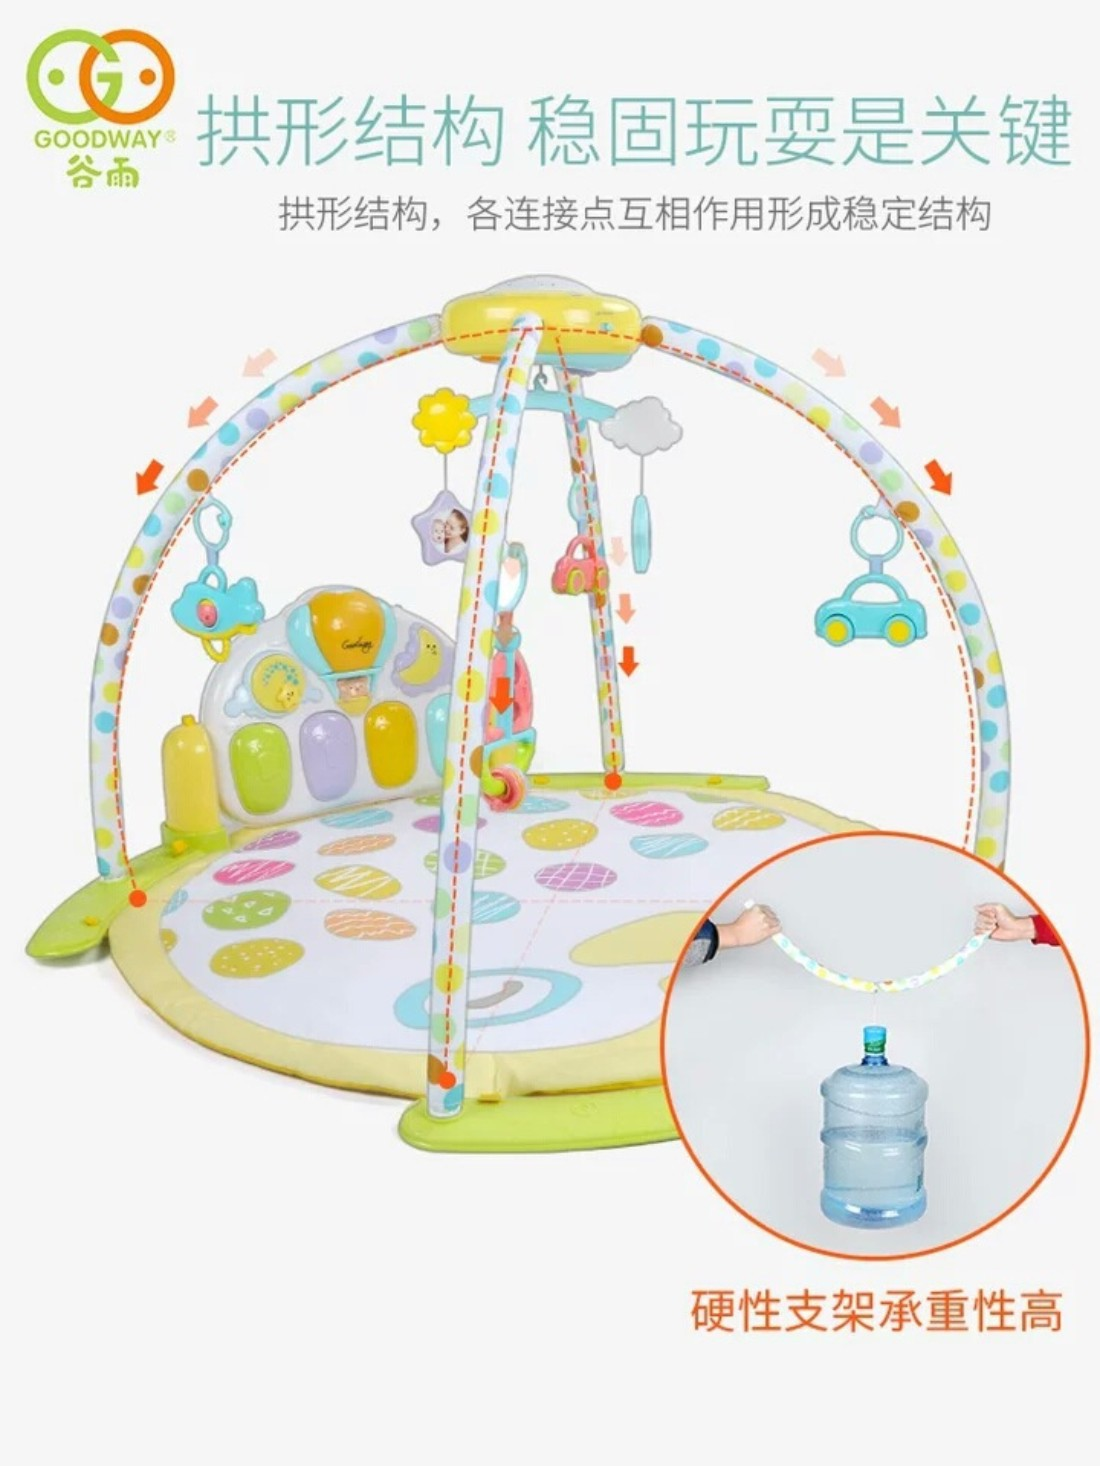 GOODWAY Infant Pedal Piano Star Fitness Rack 3-6 Month Baby Newborn Toys For Children And Infants Educational Fitness